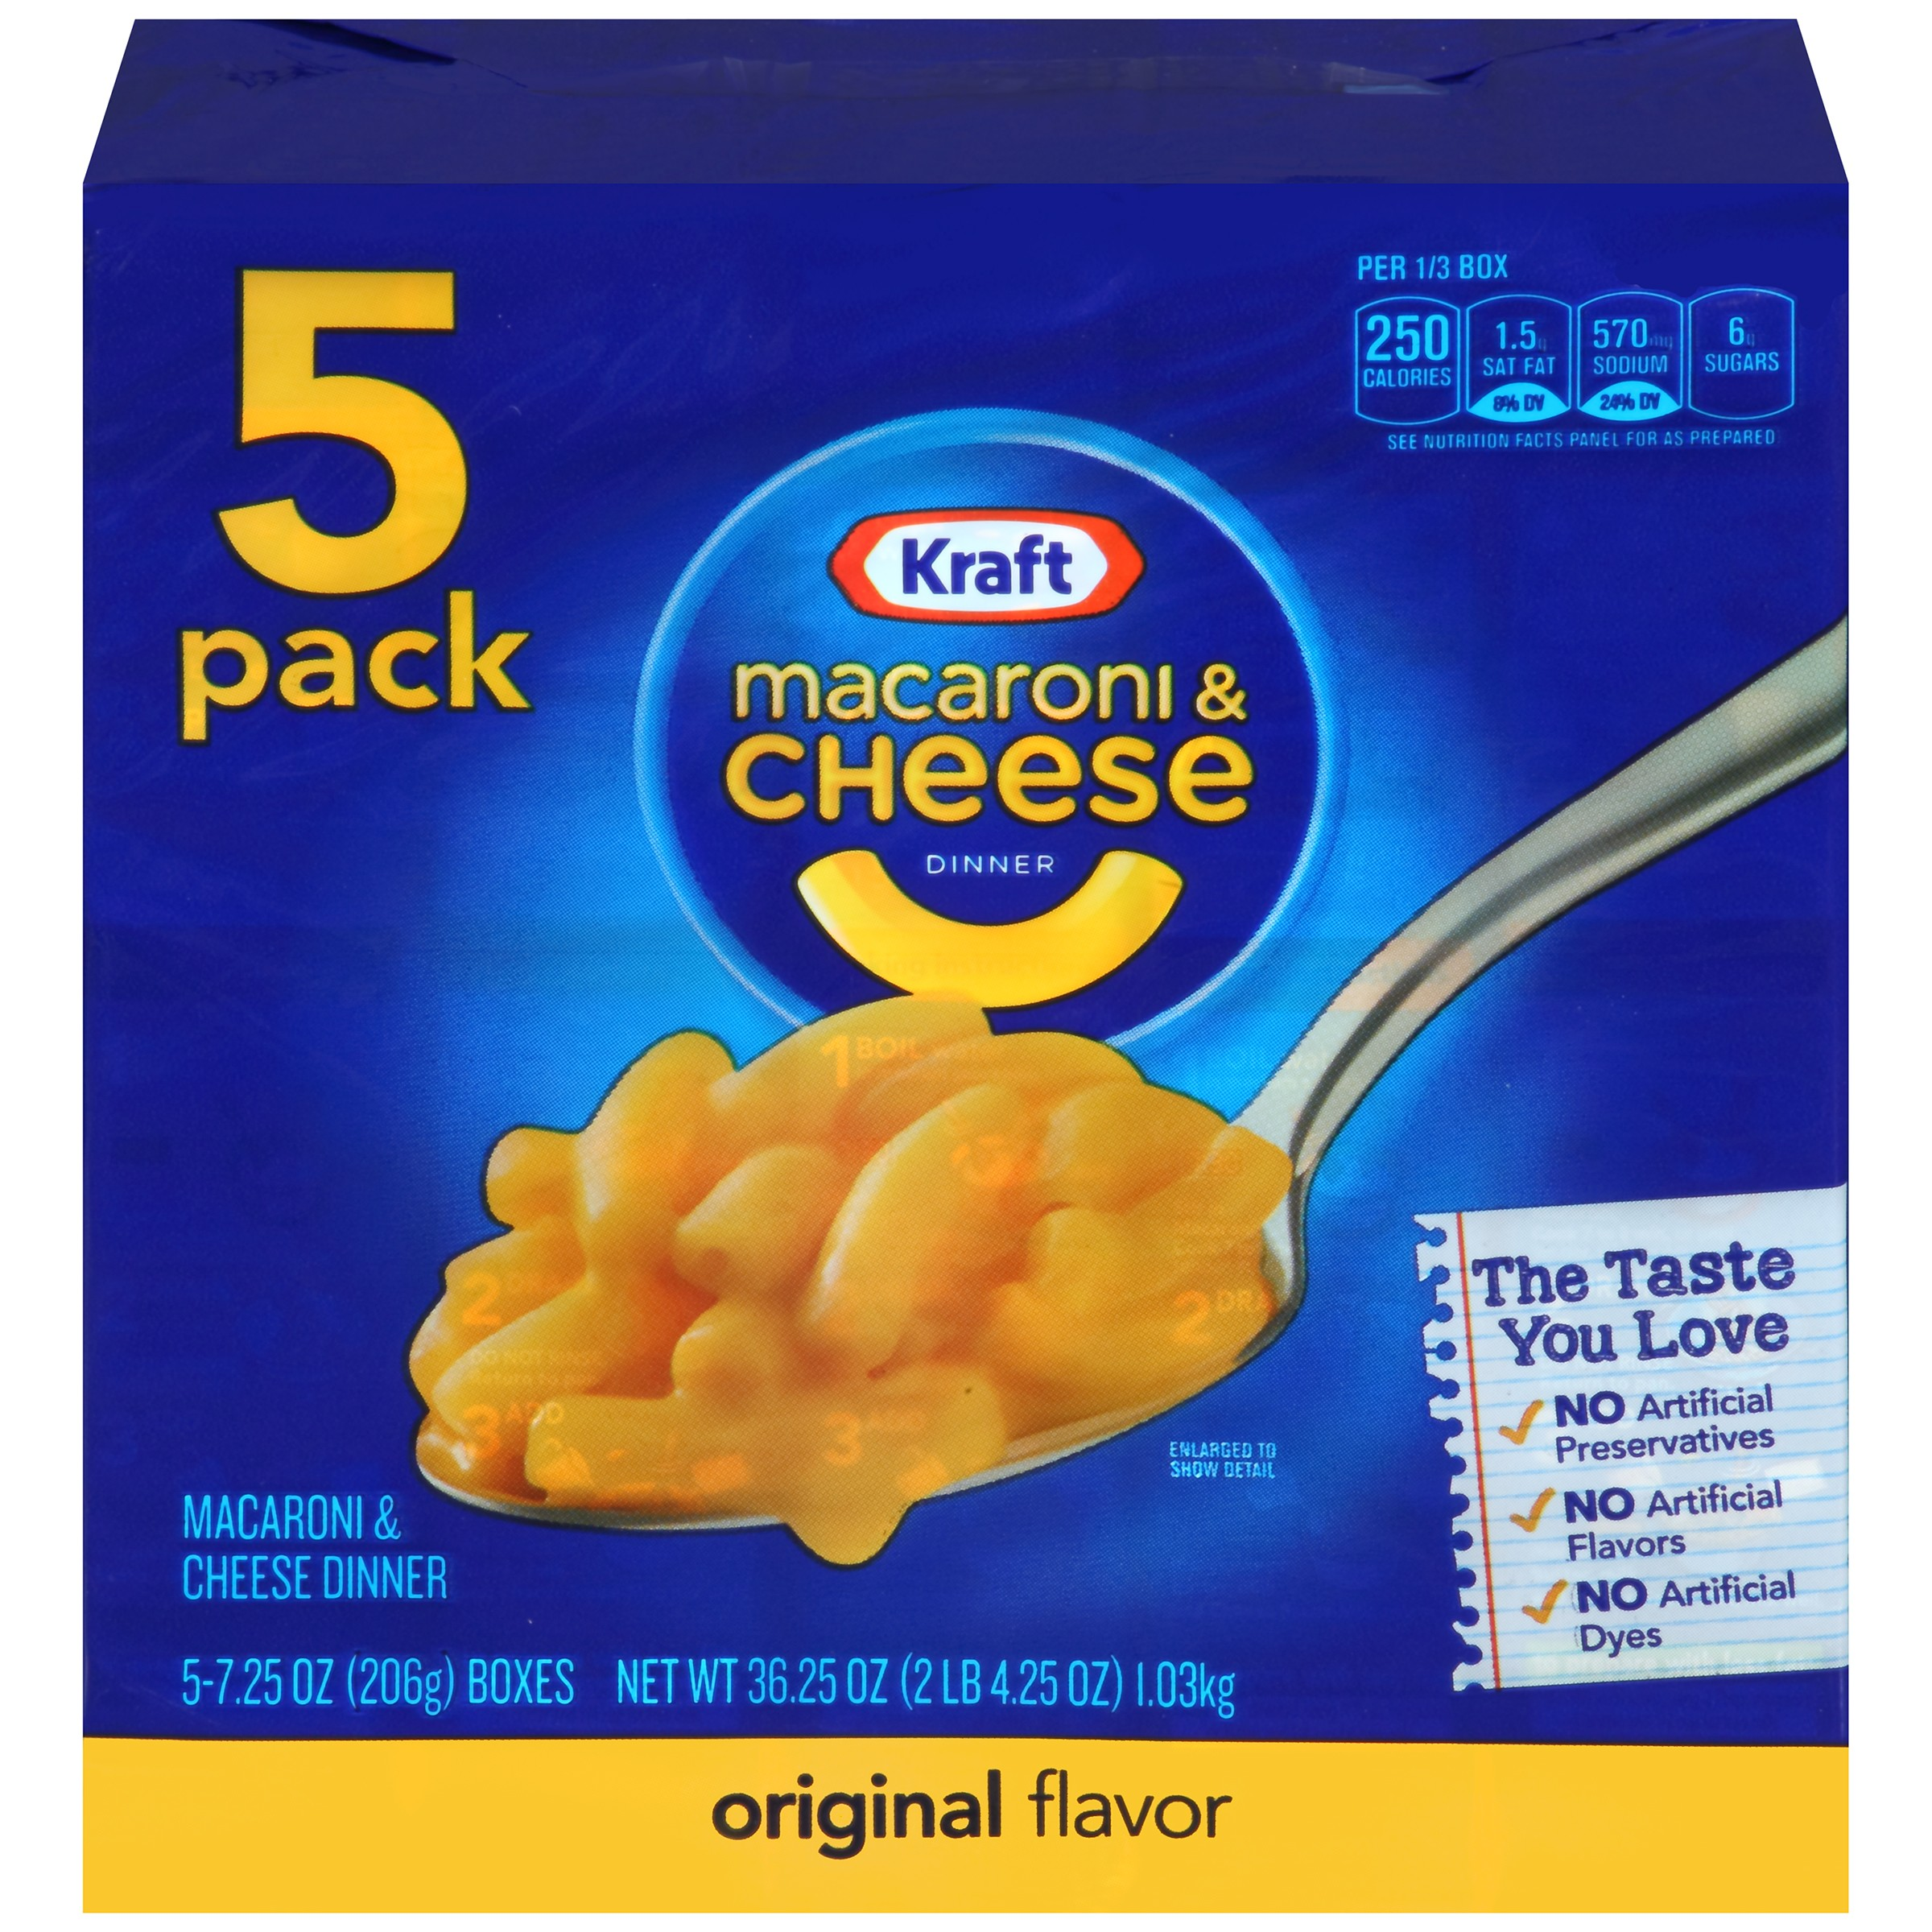 Kraft Original Flavor Macaroni & Cheese Dinner 5-7.25 oz. Boxes